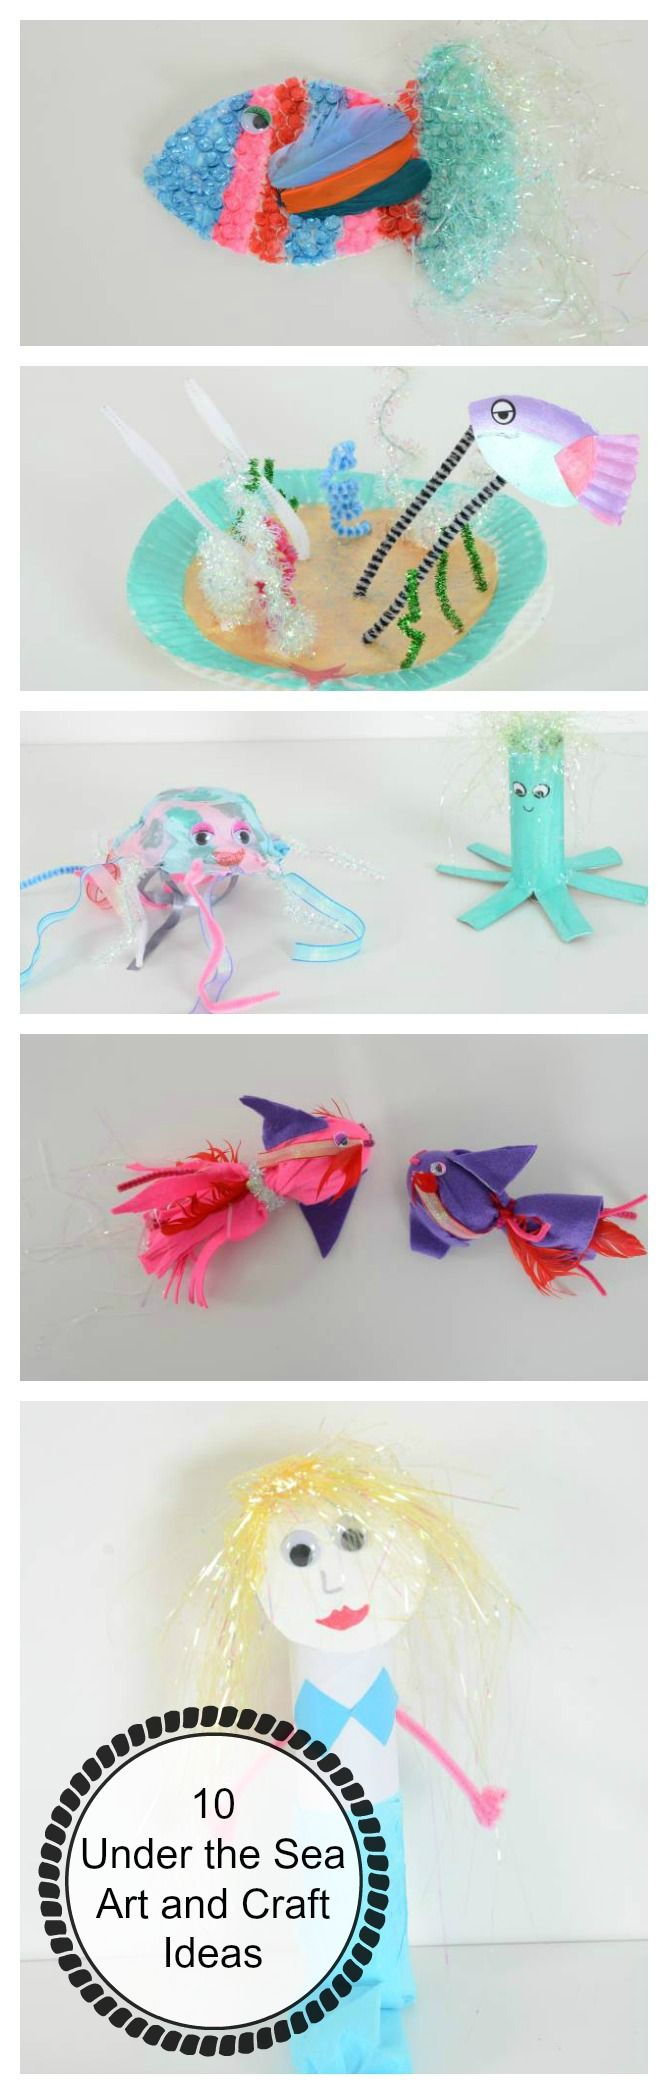 Fun crafts for an Under the Sea  classroom display #LearningIsFun